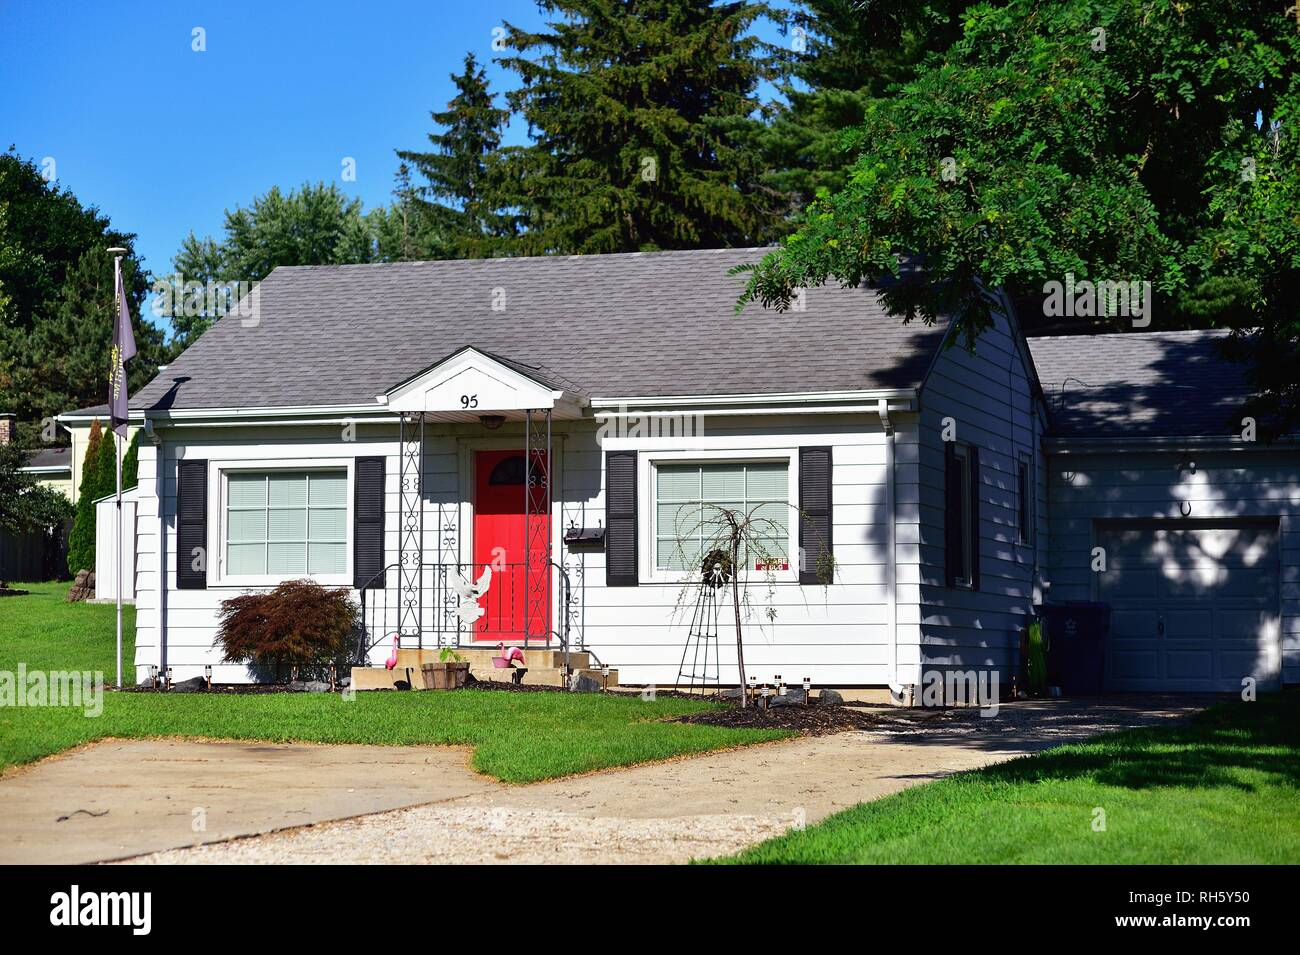 South Elgin, Illinois, USA. A very small, tidy home in suburban Chicago. - Stock Image